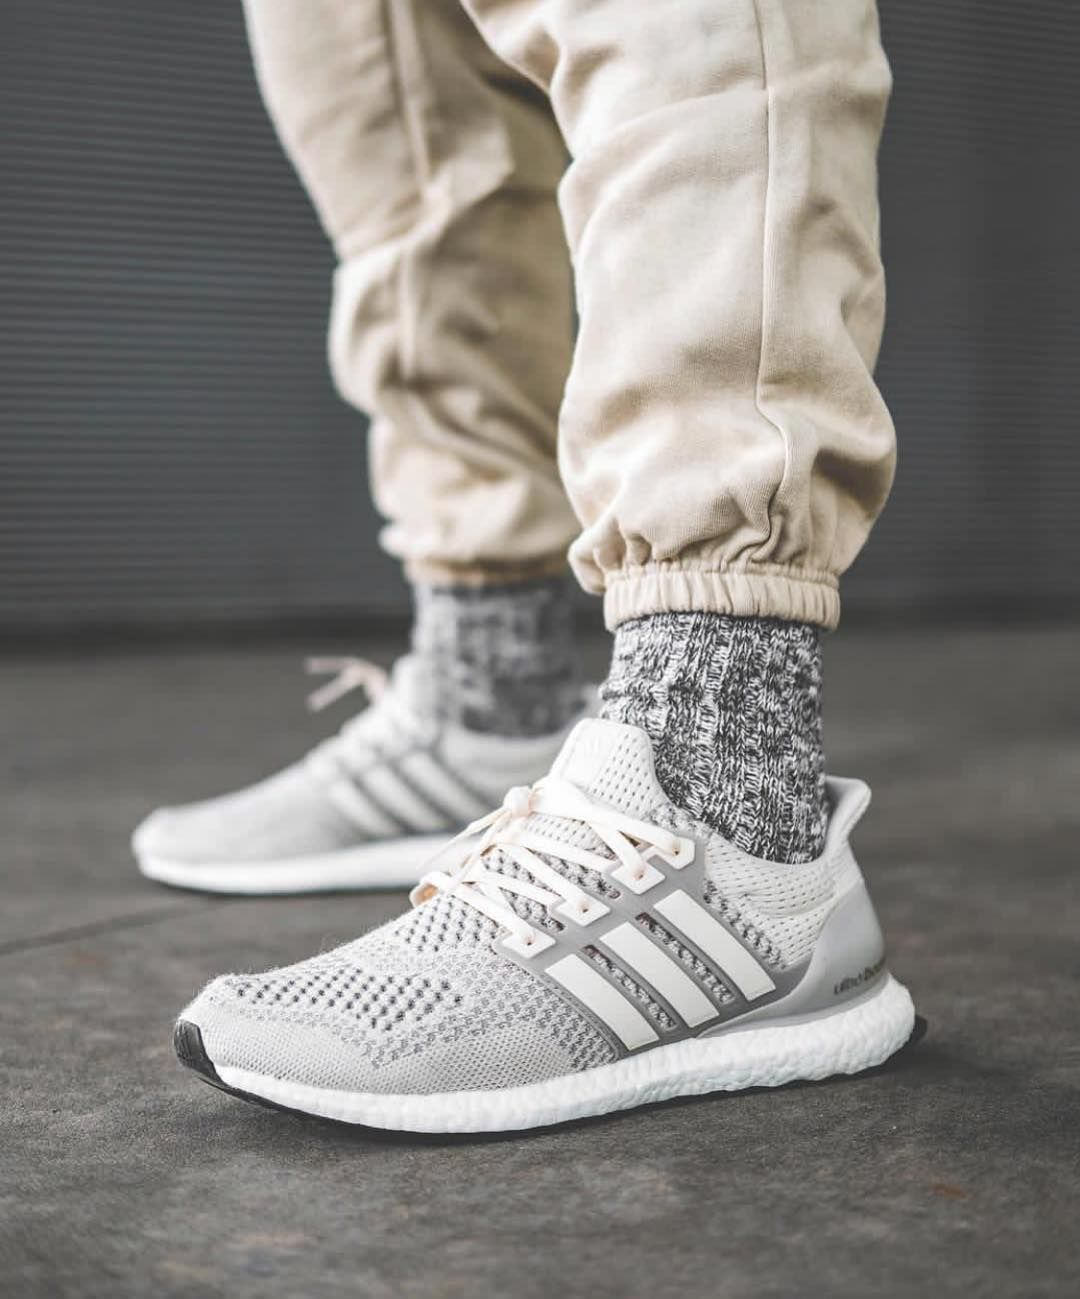 Kanye West X Adidas Yeezy Boost 350 Adidas Shoes Women Sneakers Men Fashion Shoes Sneakers Adidas